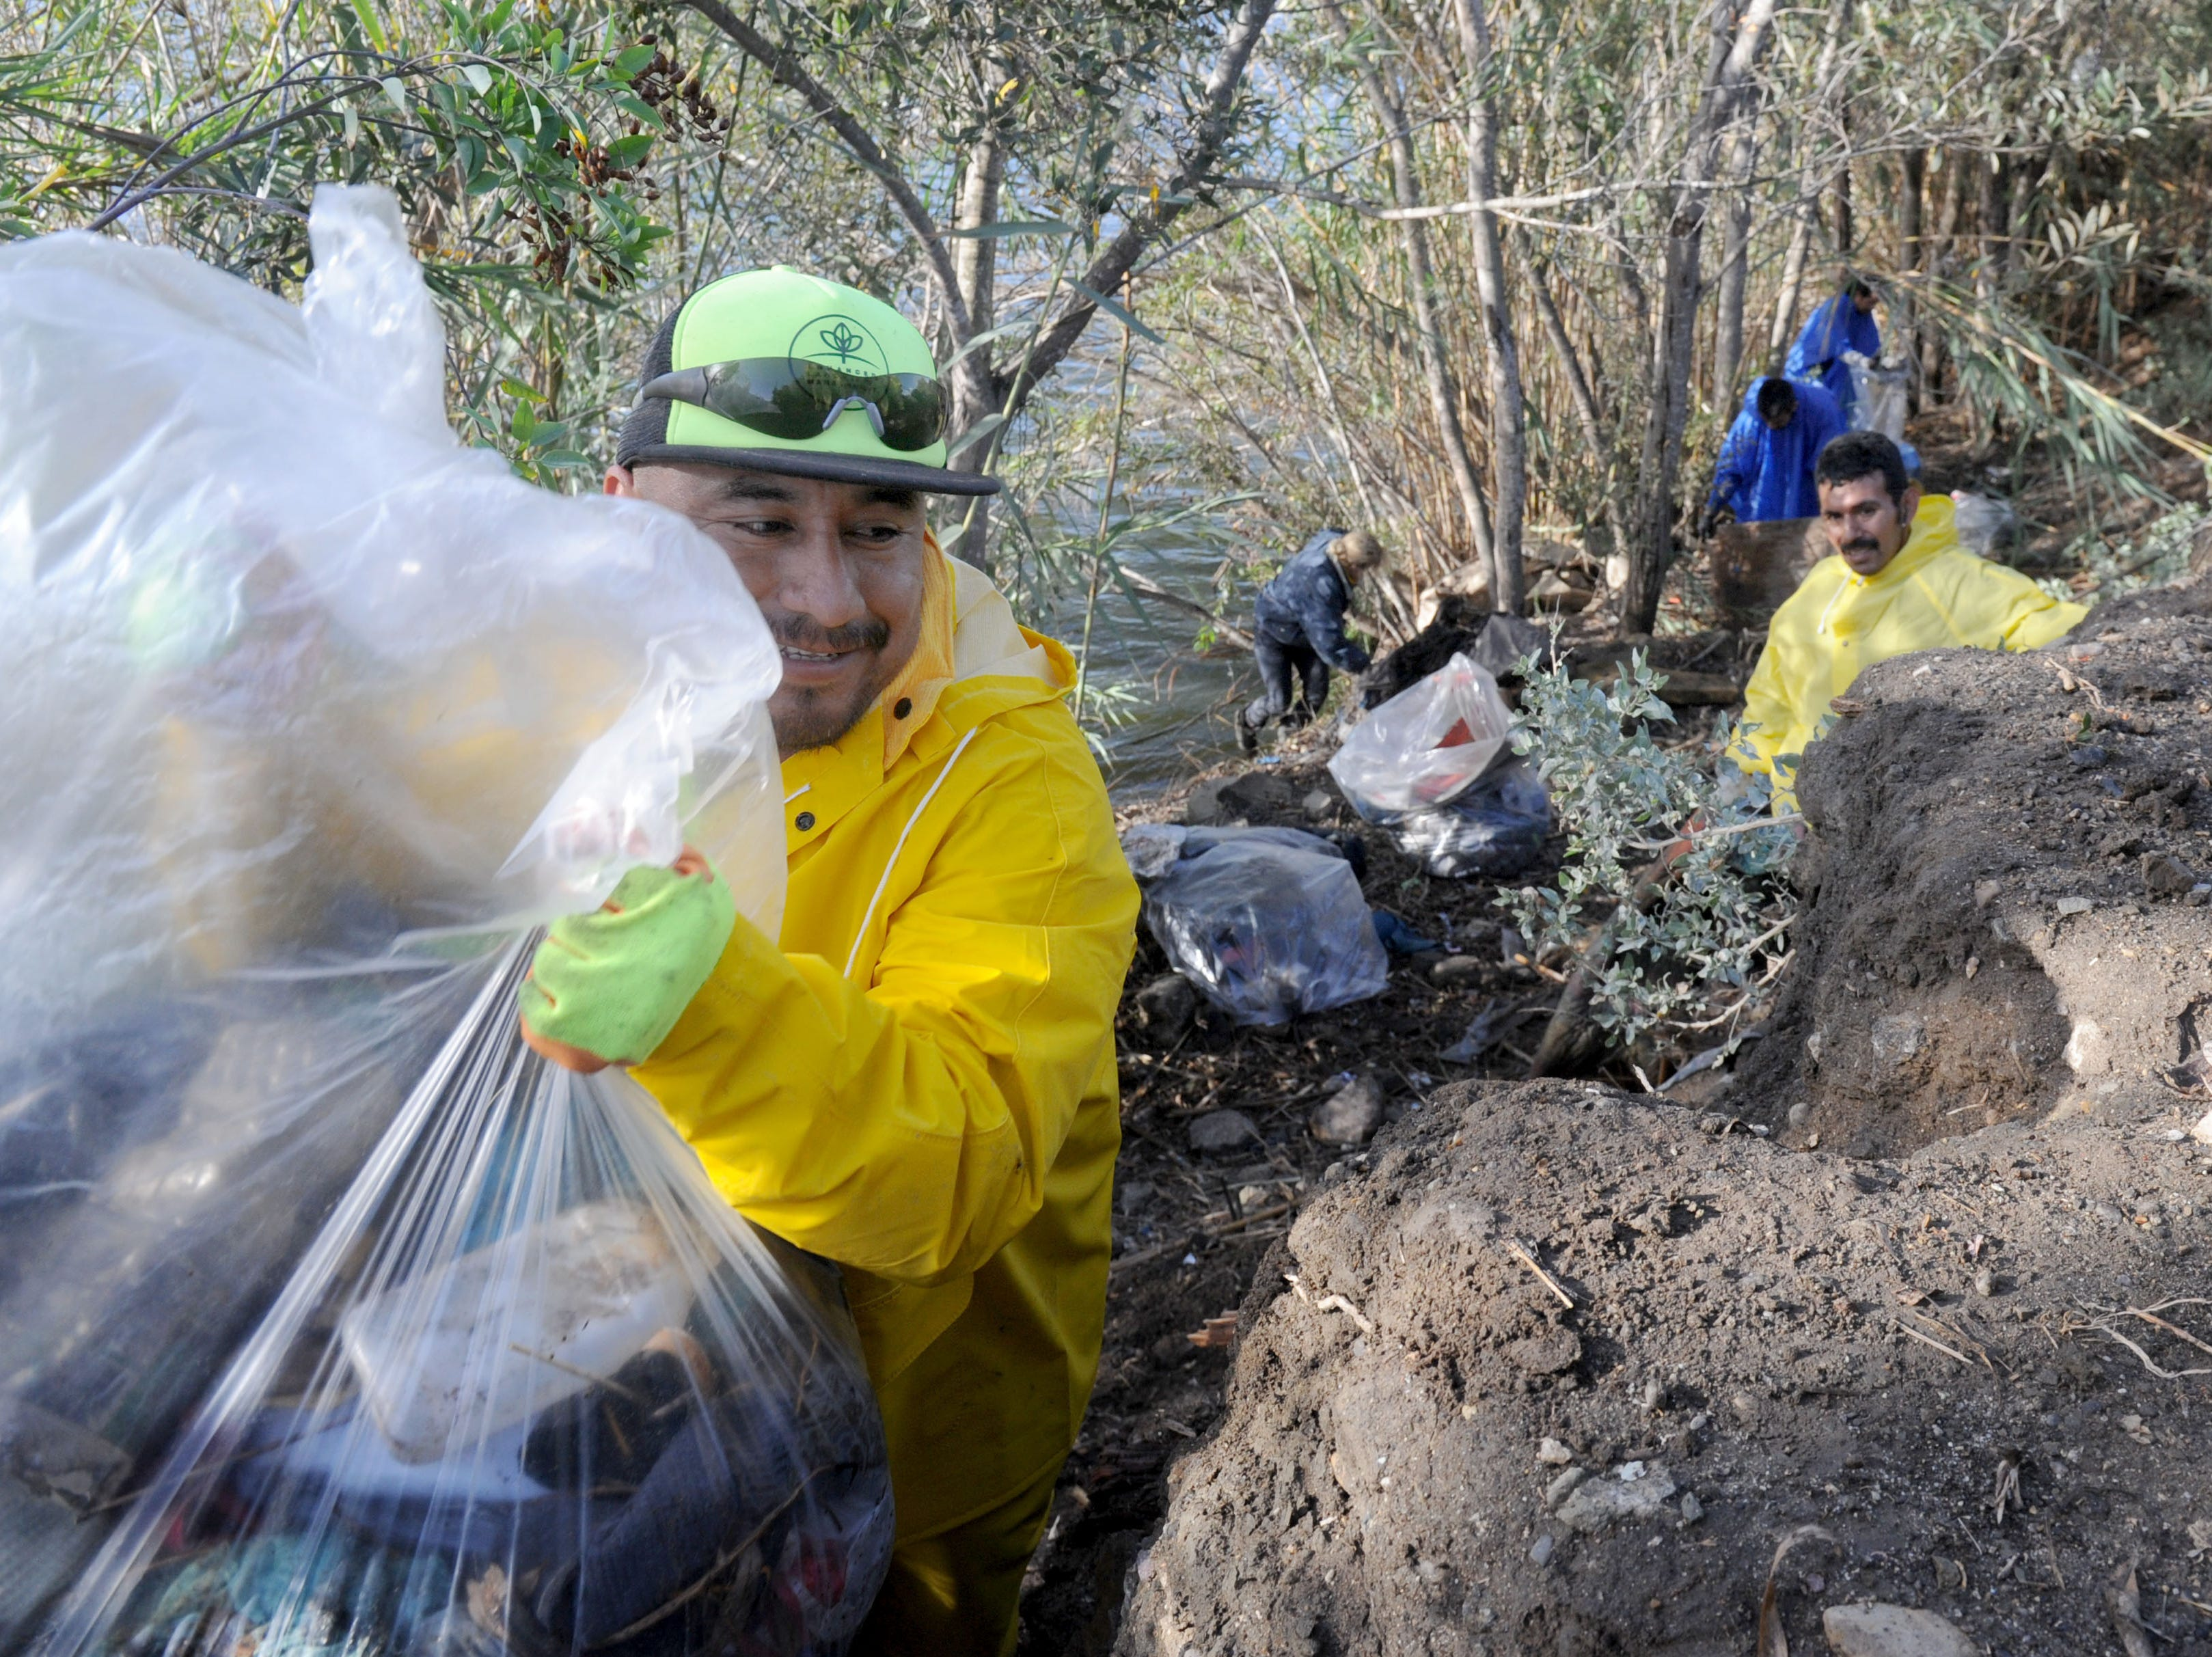 Gilberto Santos brings up a trash bag out  of the Santa Clara River bottom. The City of Ventura was the organizer to clean as much trash along the embankment to minimize trash flow to the ocean.